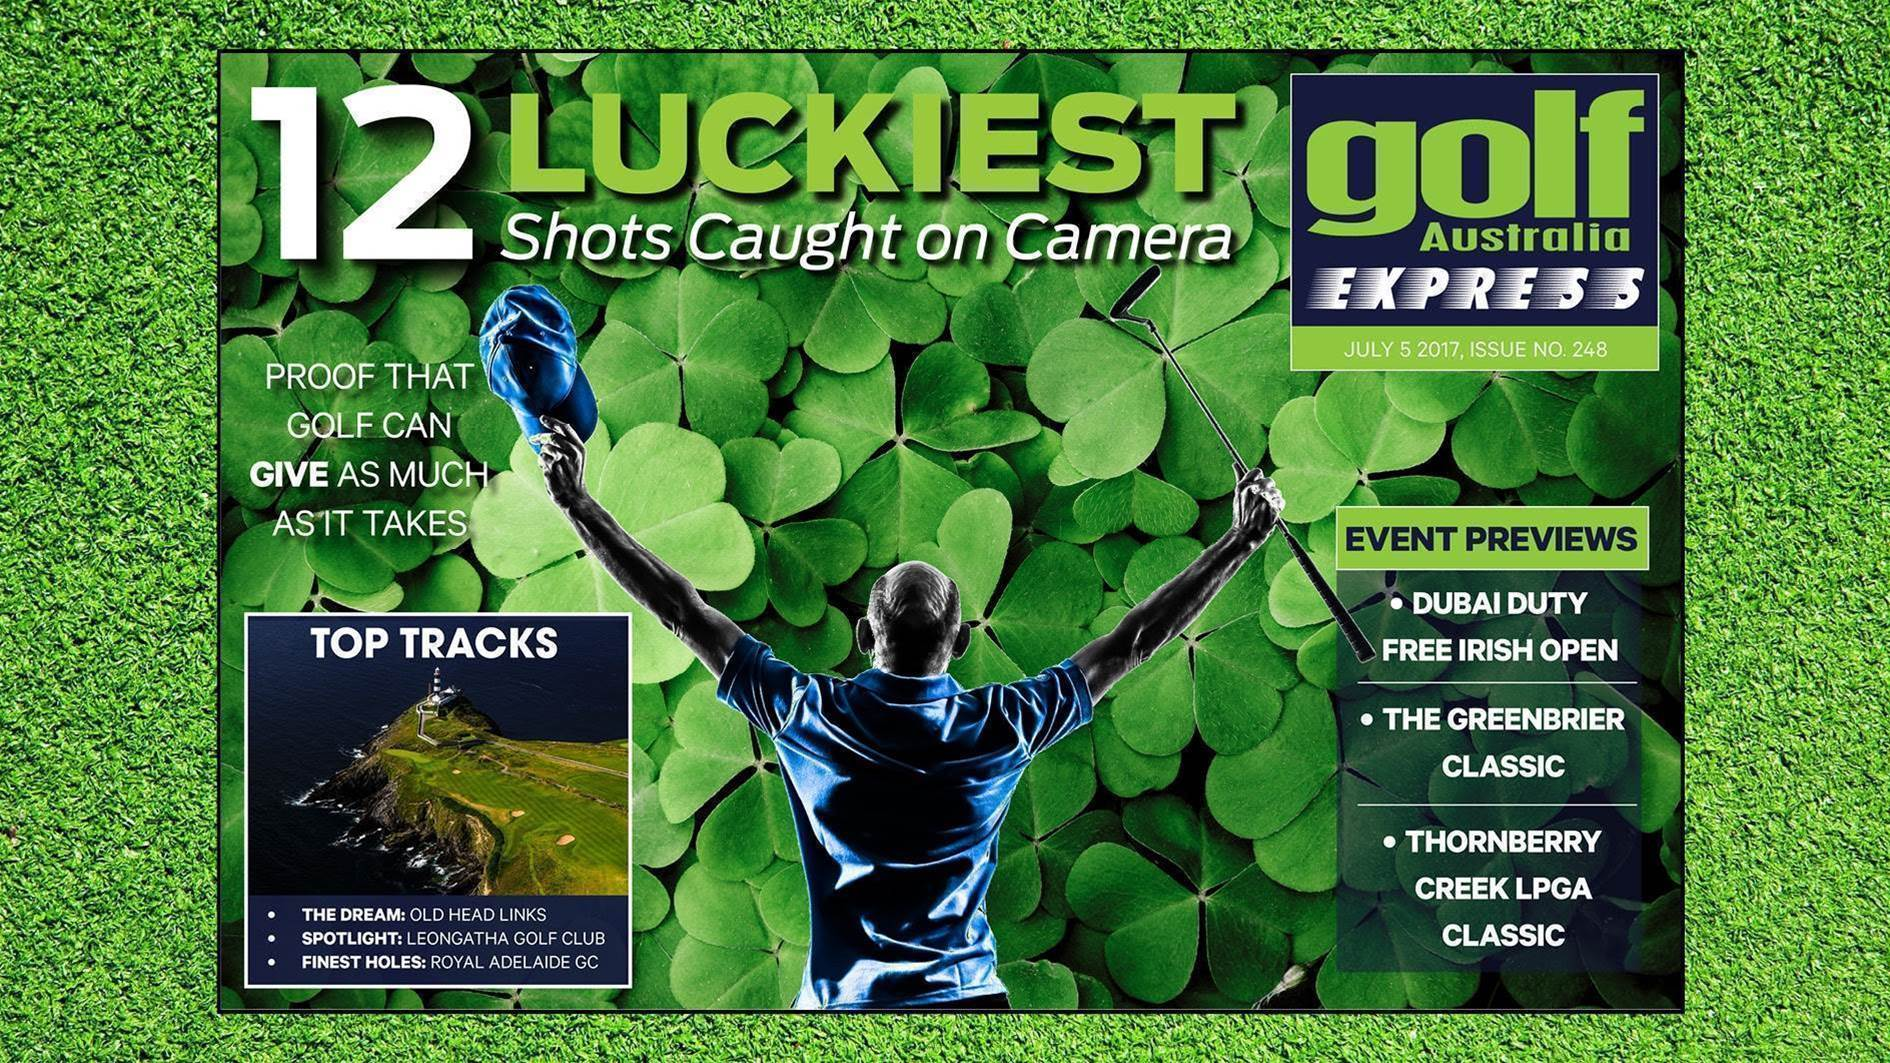 GA Express #248: The luck of the Irish